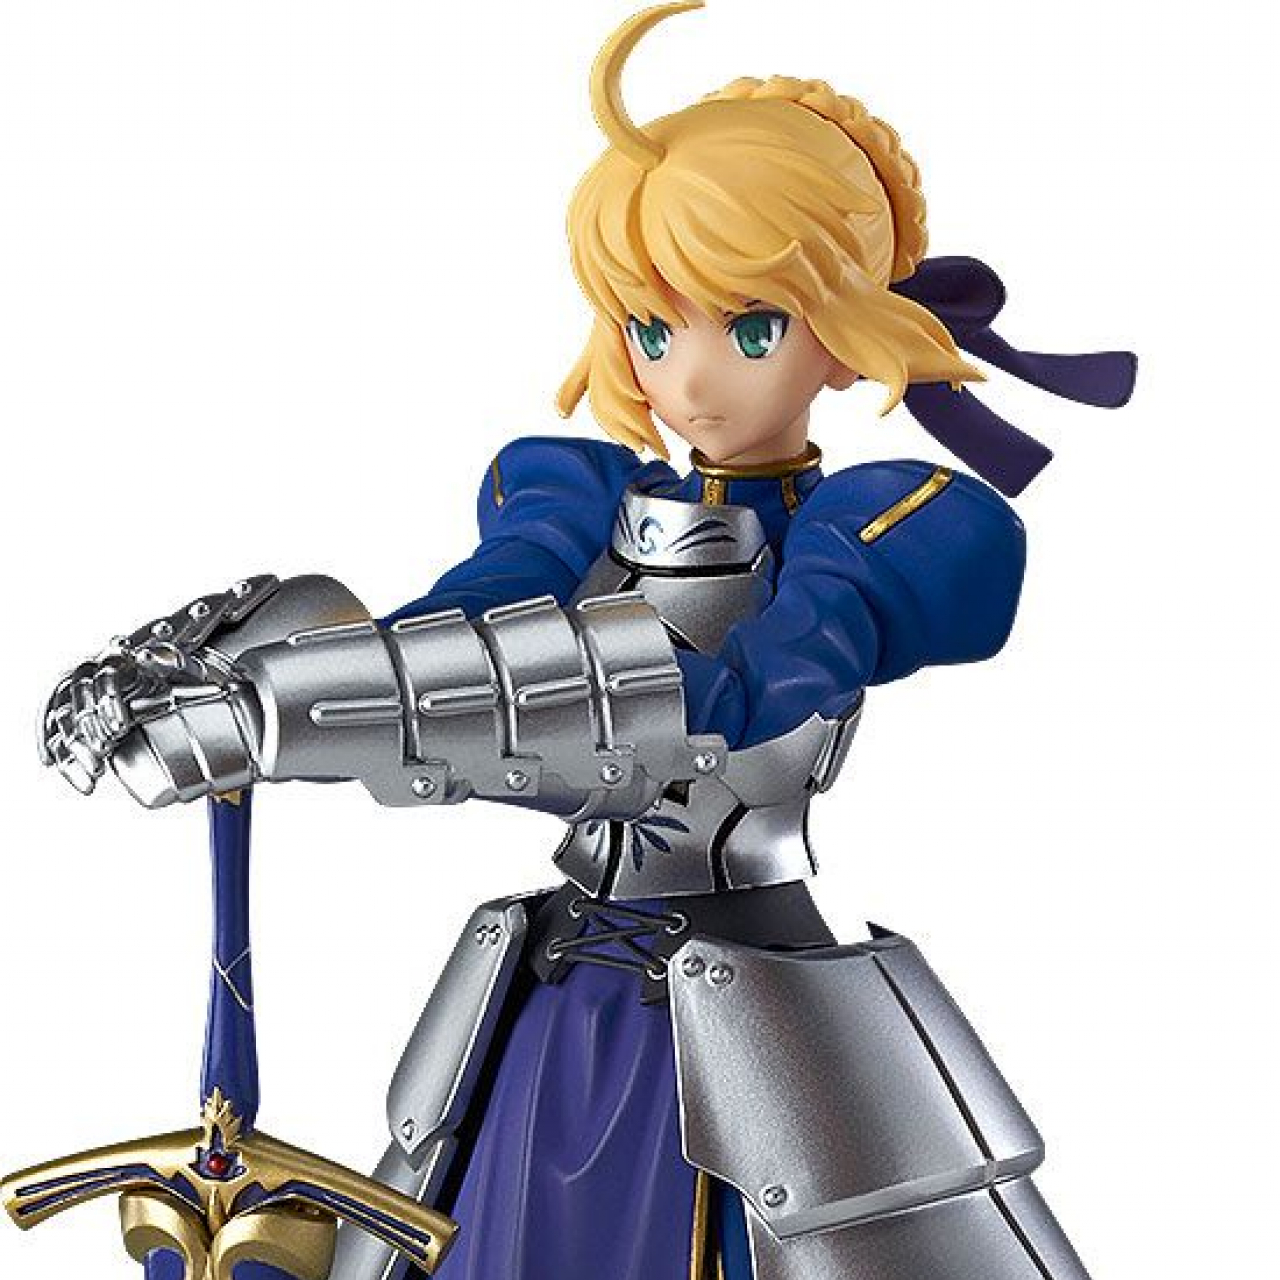 Fate/Stay Night Figma Action Figure Saber 2.0 14 cm